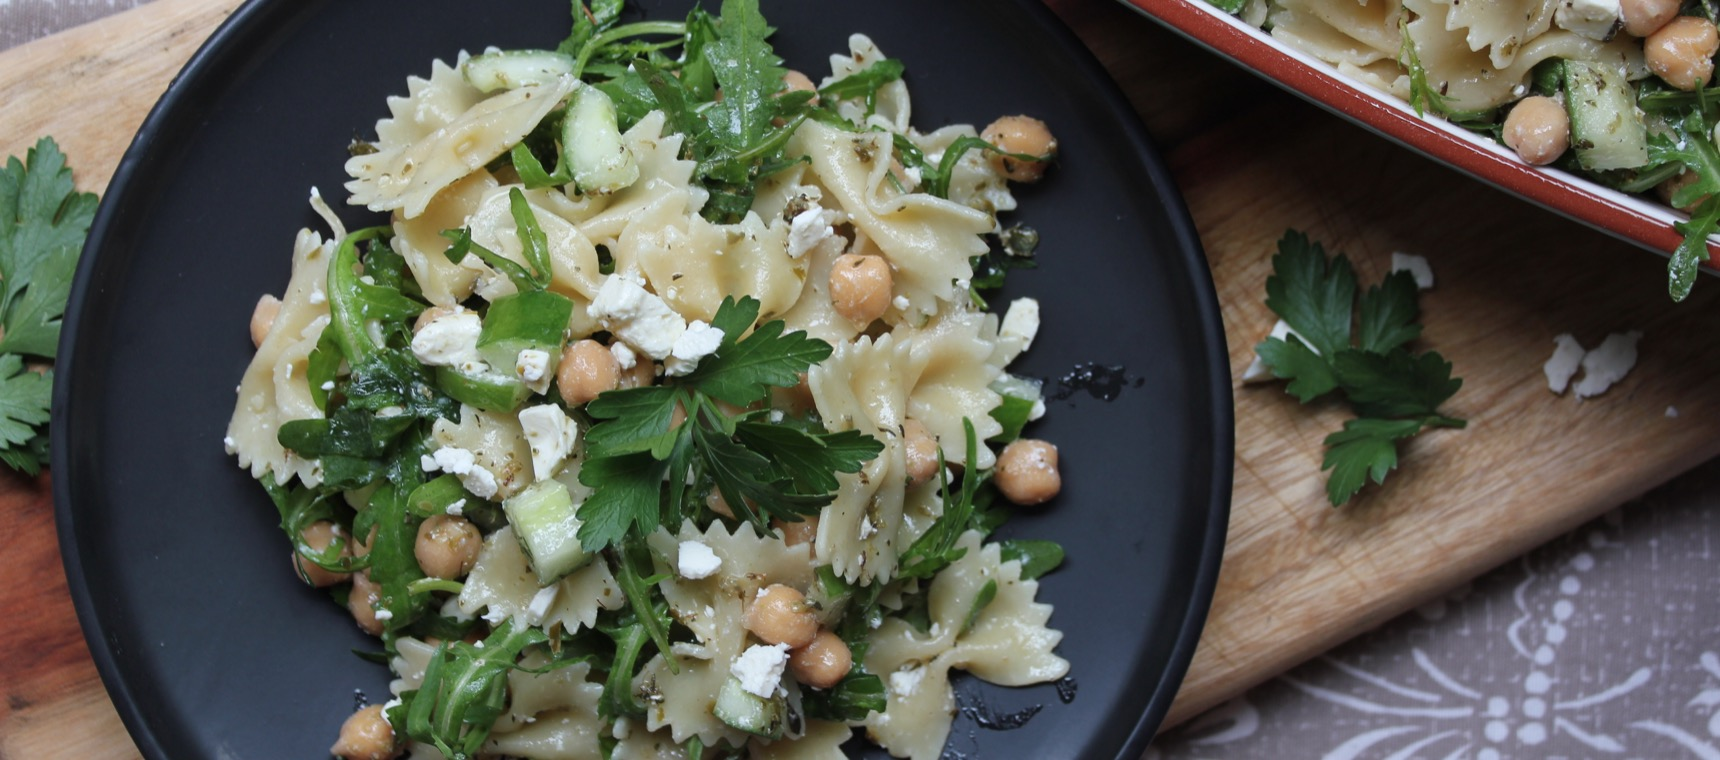 Chickpea, Rocket and Feta Pasta Salad